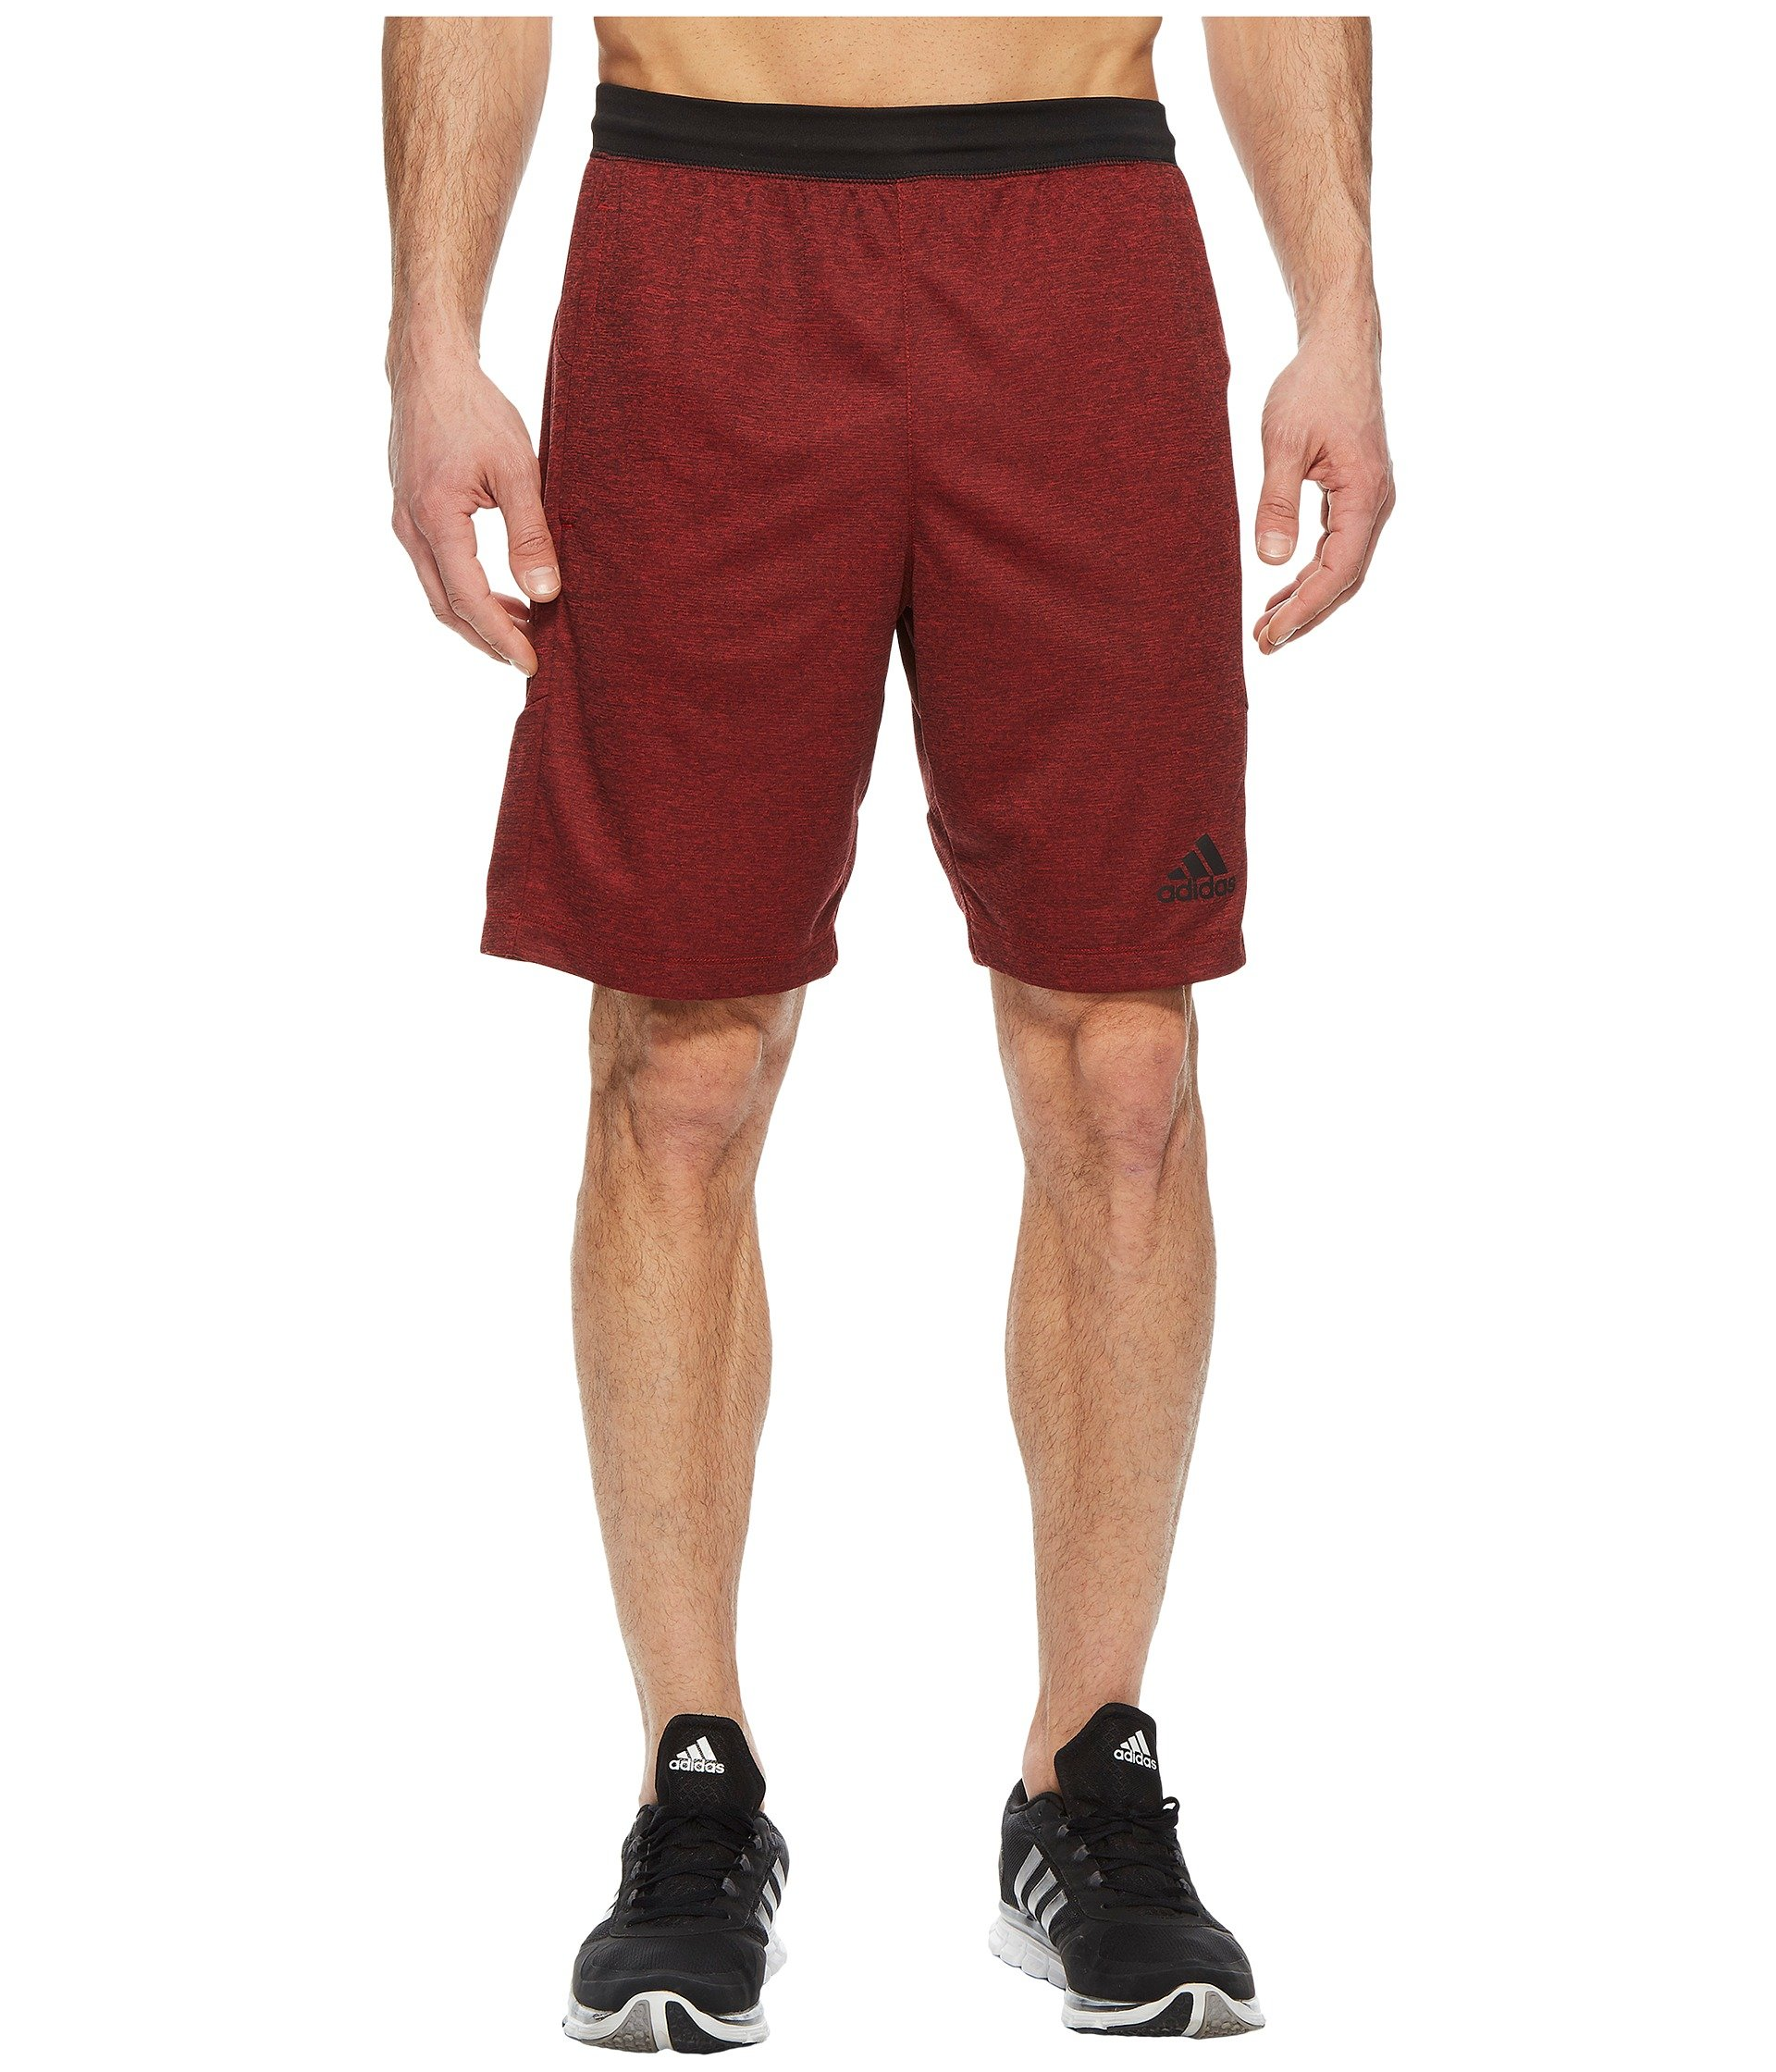 adidas Men's SpeedBreaker Hype Shorts Scarlet/Colored Heather Small 10